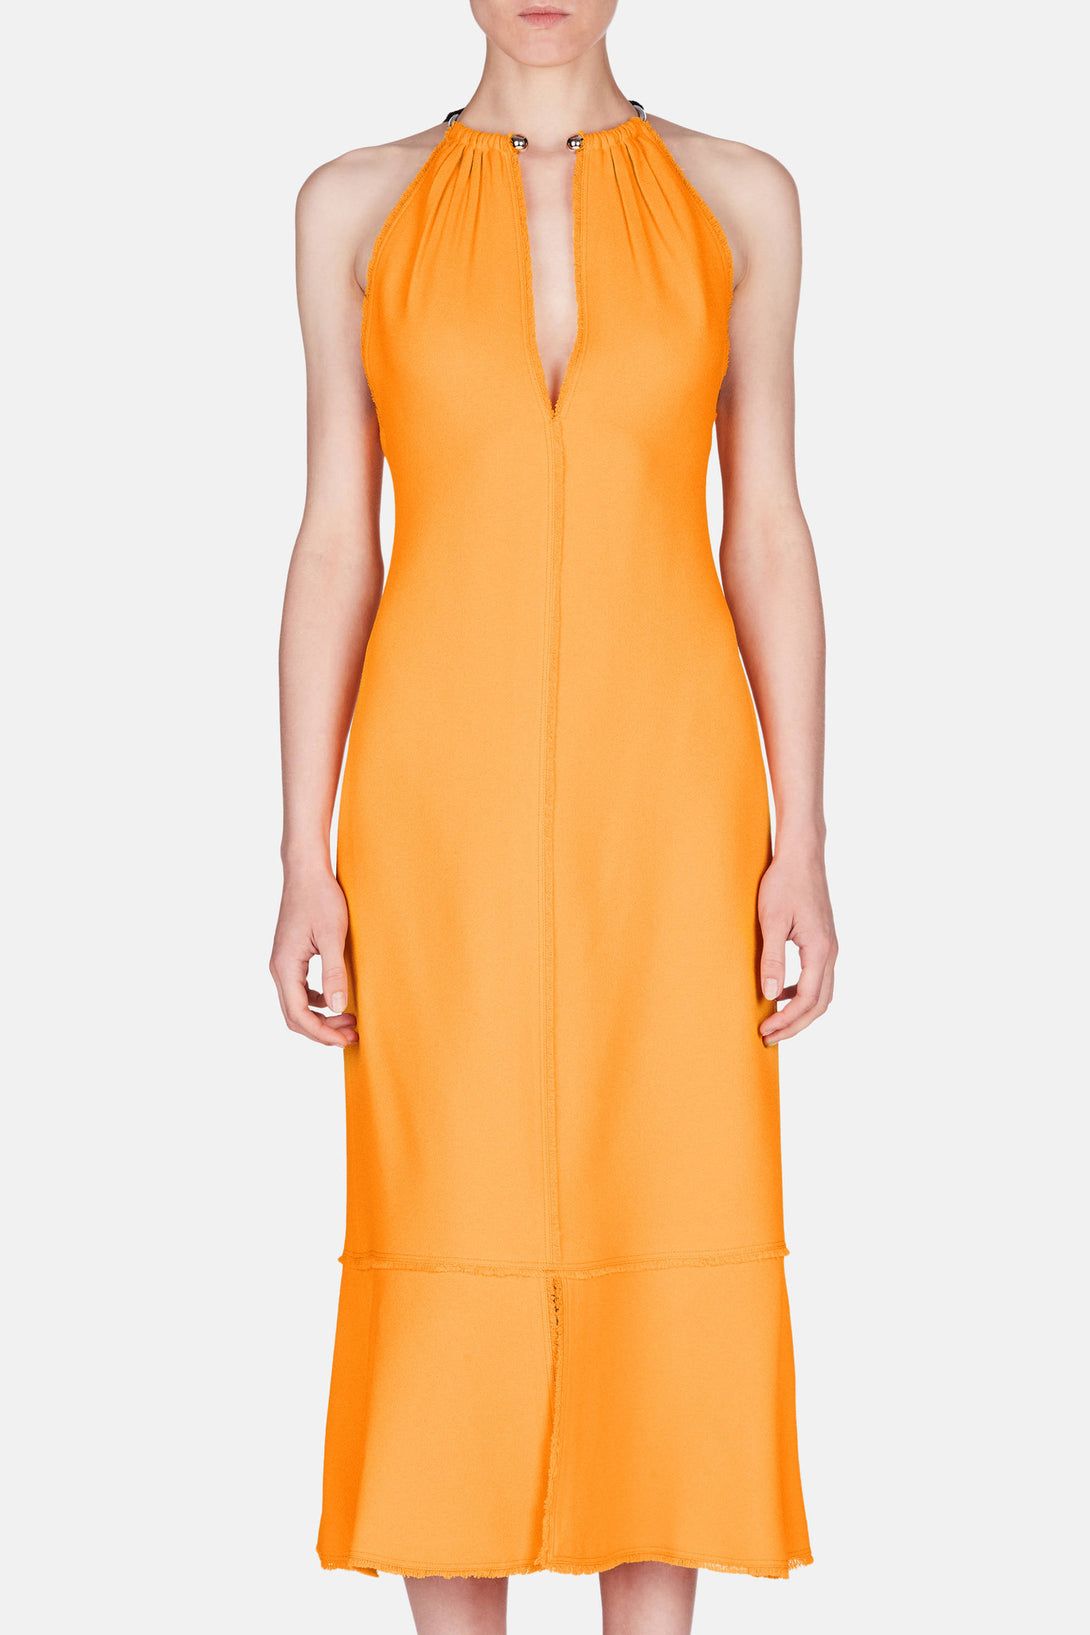 Sleeveless V-Neck Dress with Necklace - Bright Tangerine